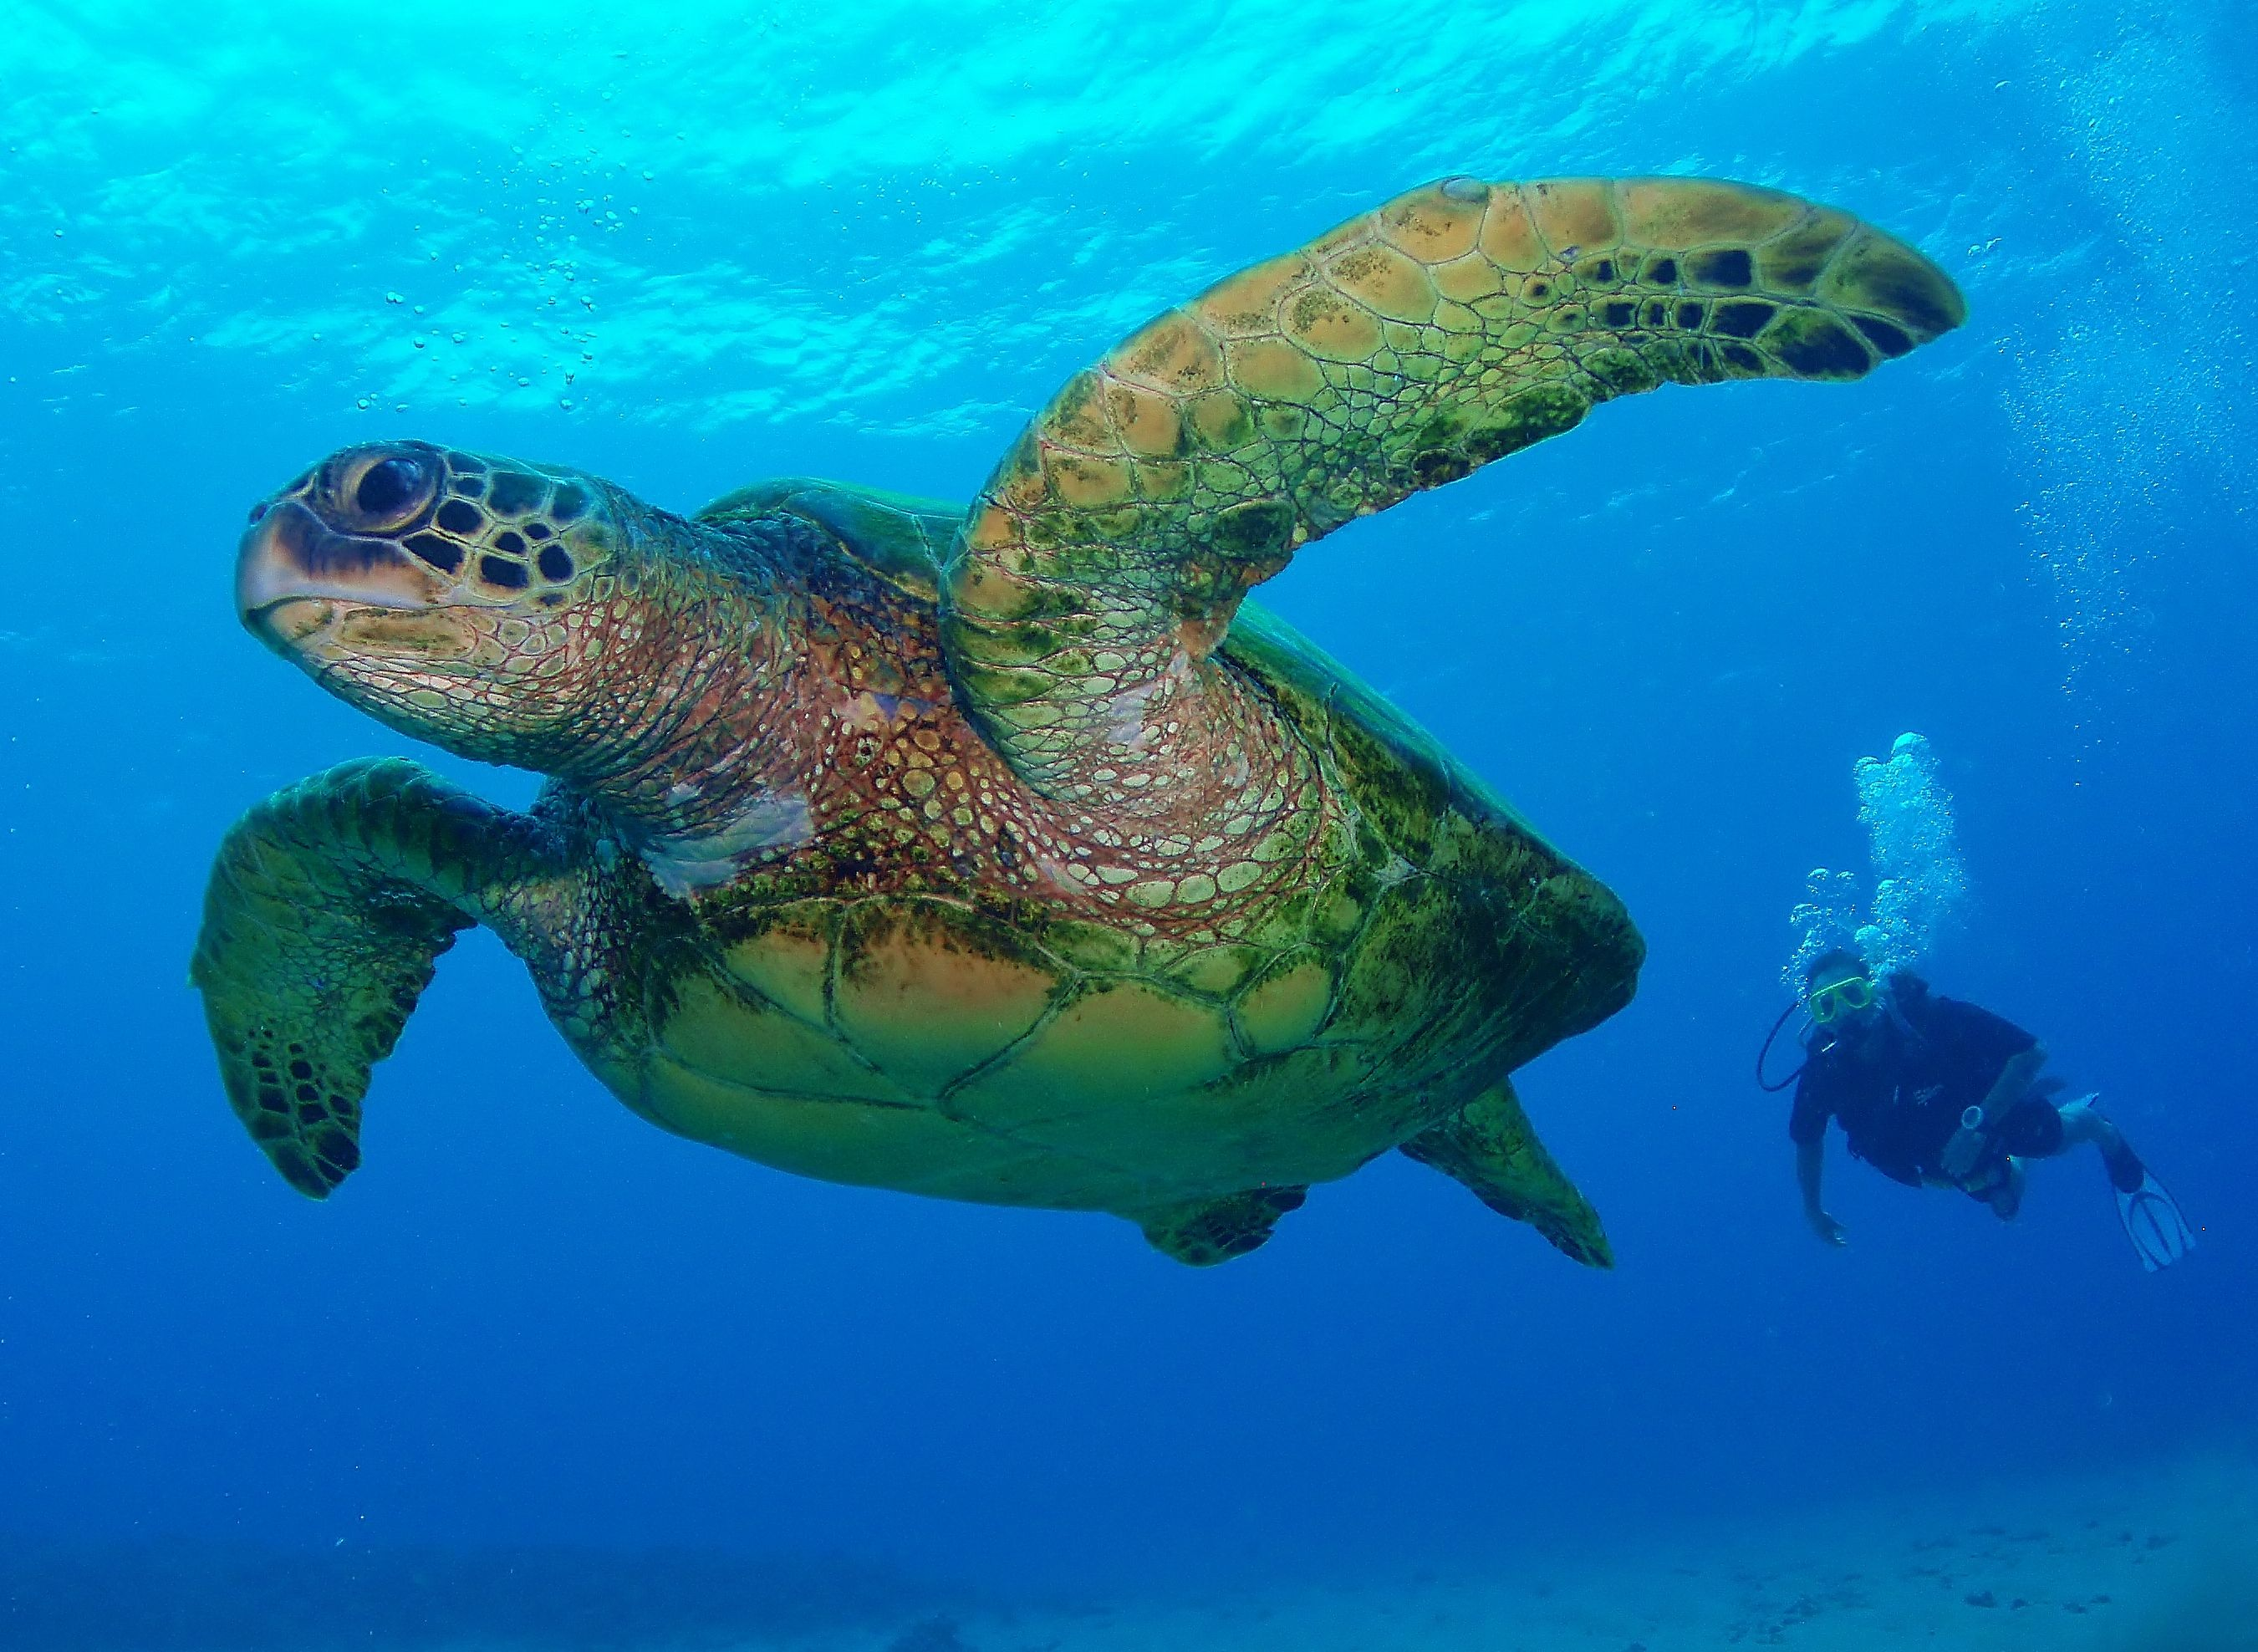 Green Sea Turtles Are An Endangered Species With